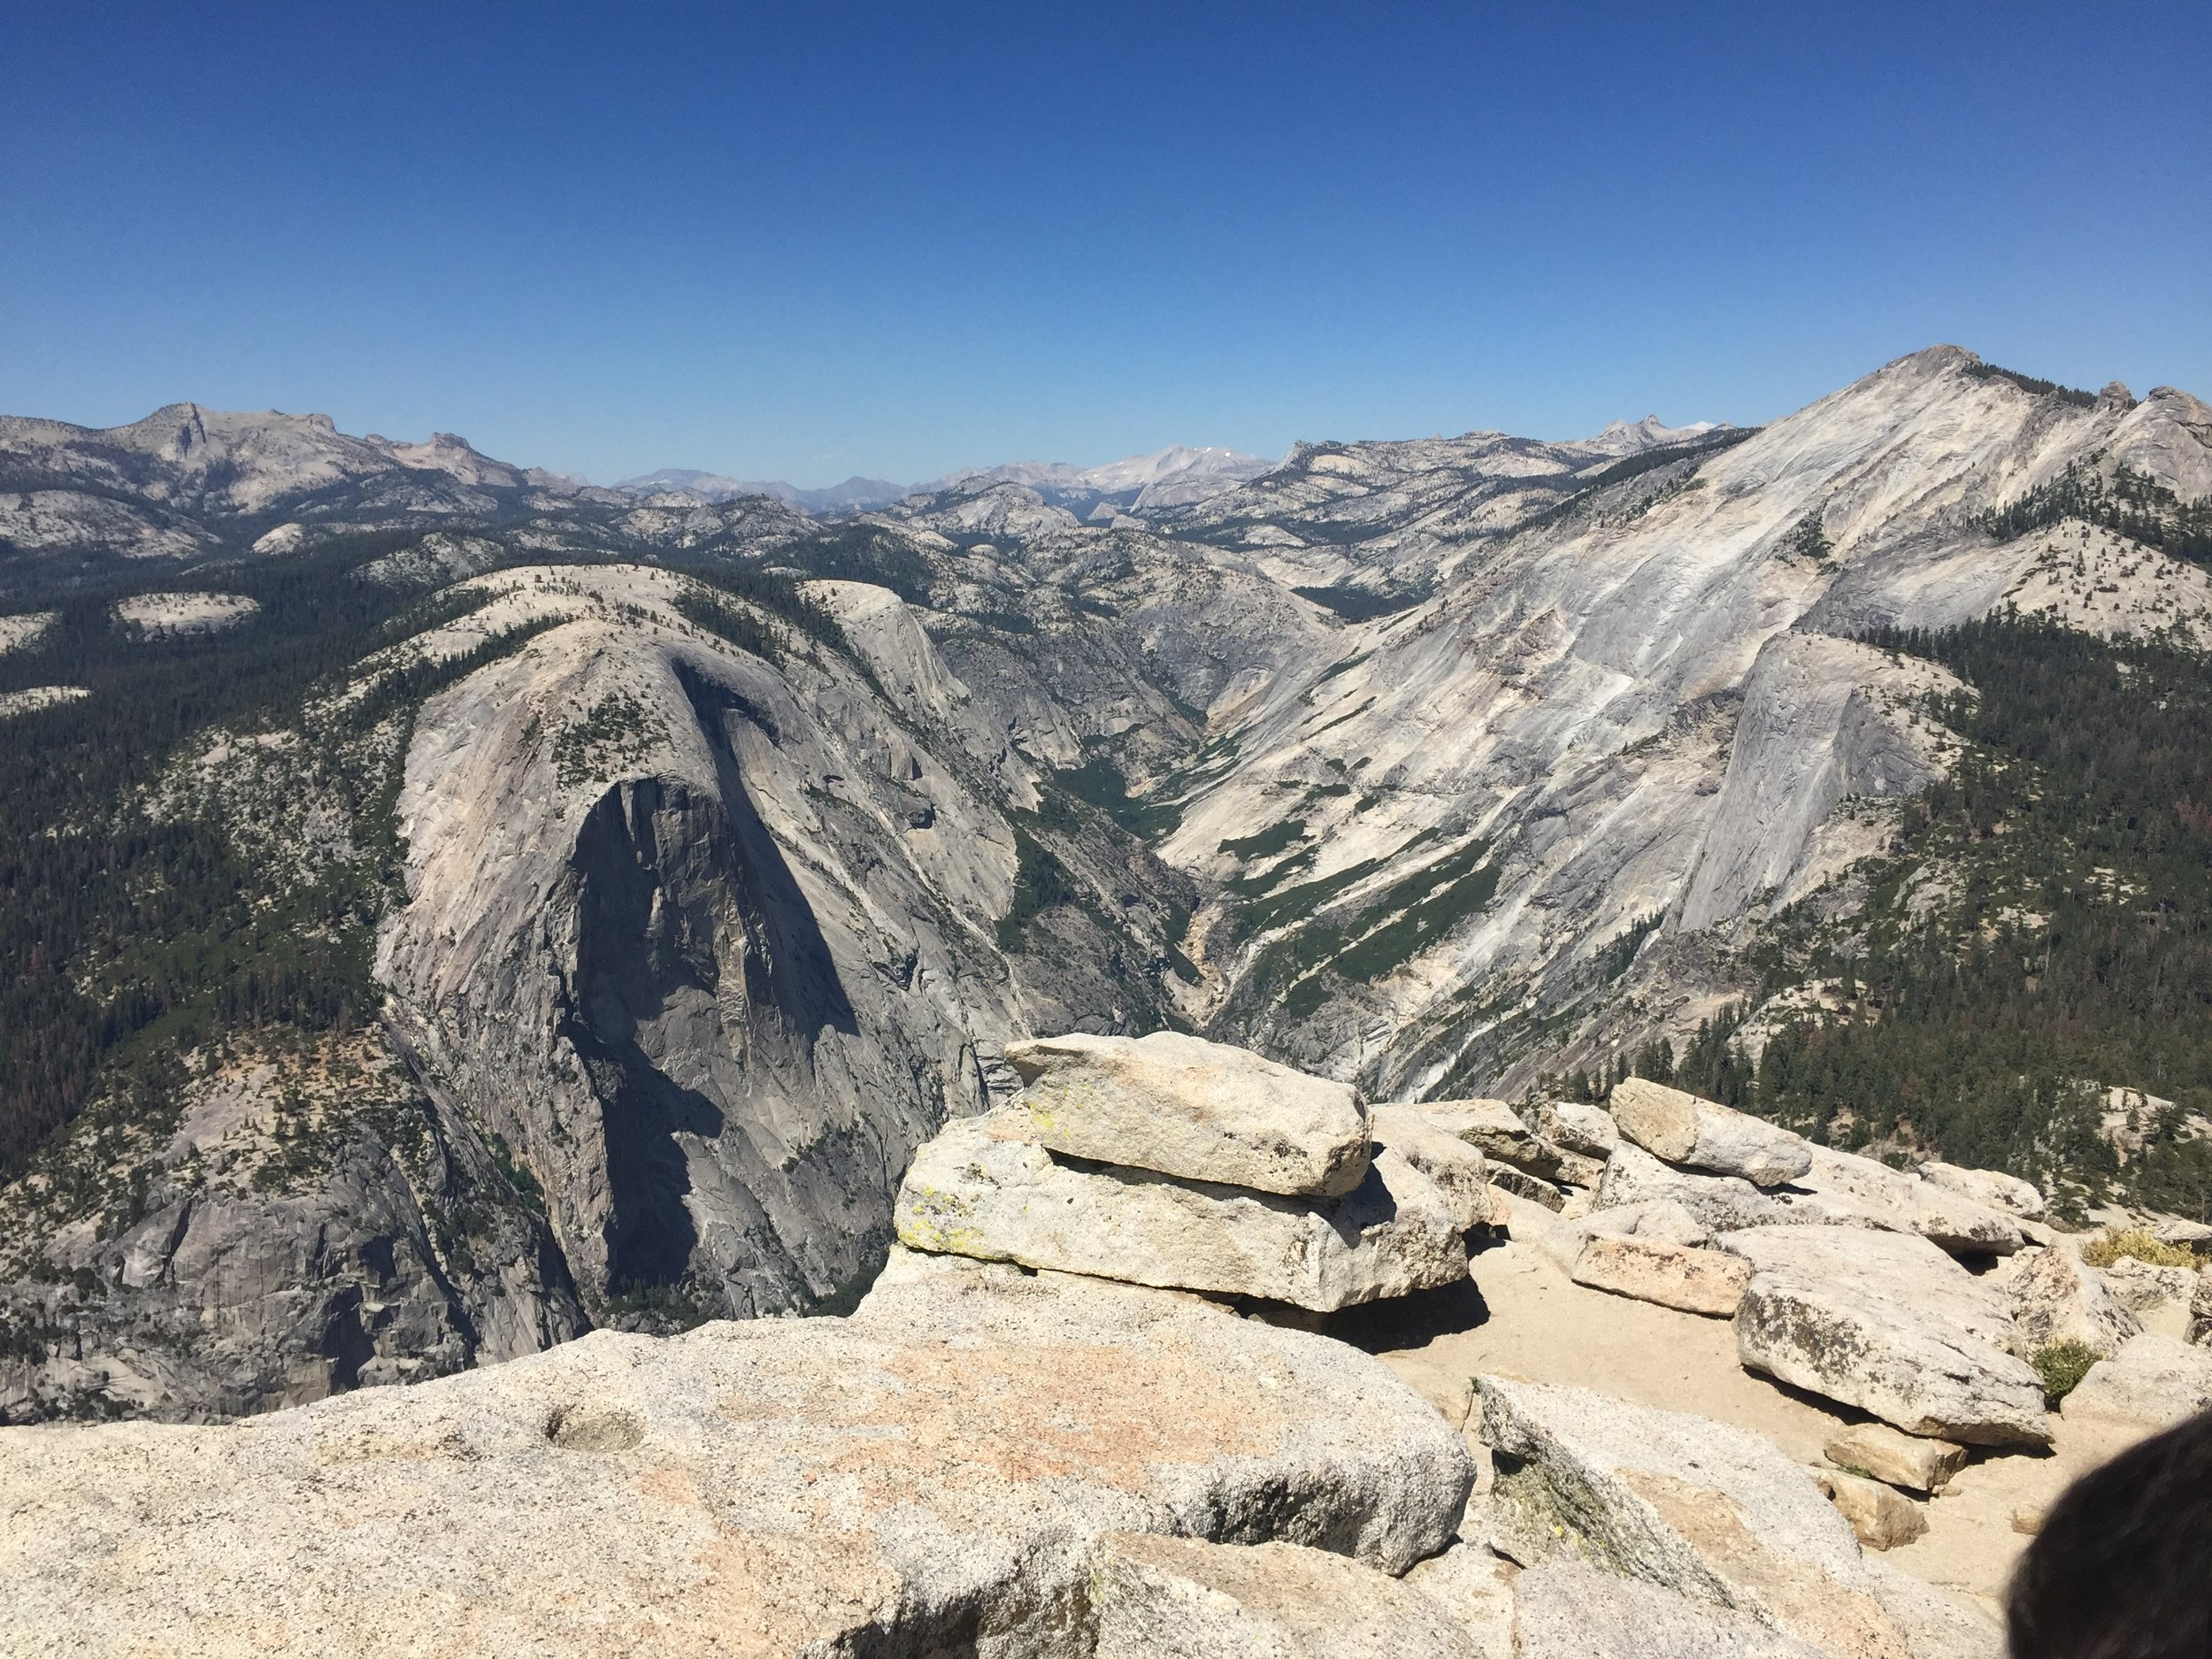 Stunning 360° views await you at the top of Half Dome